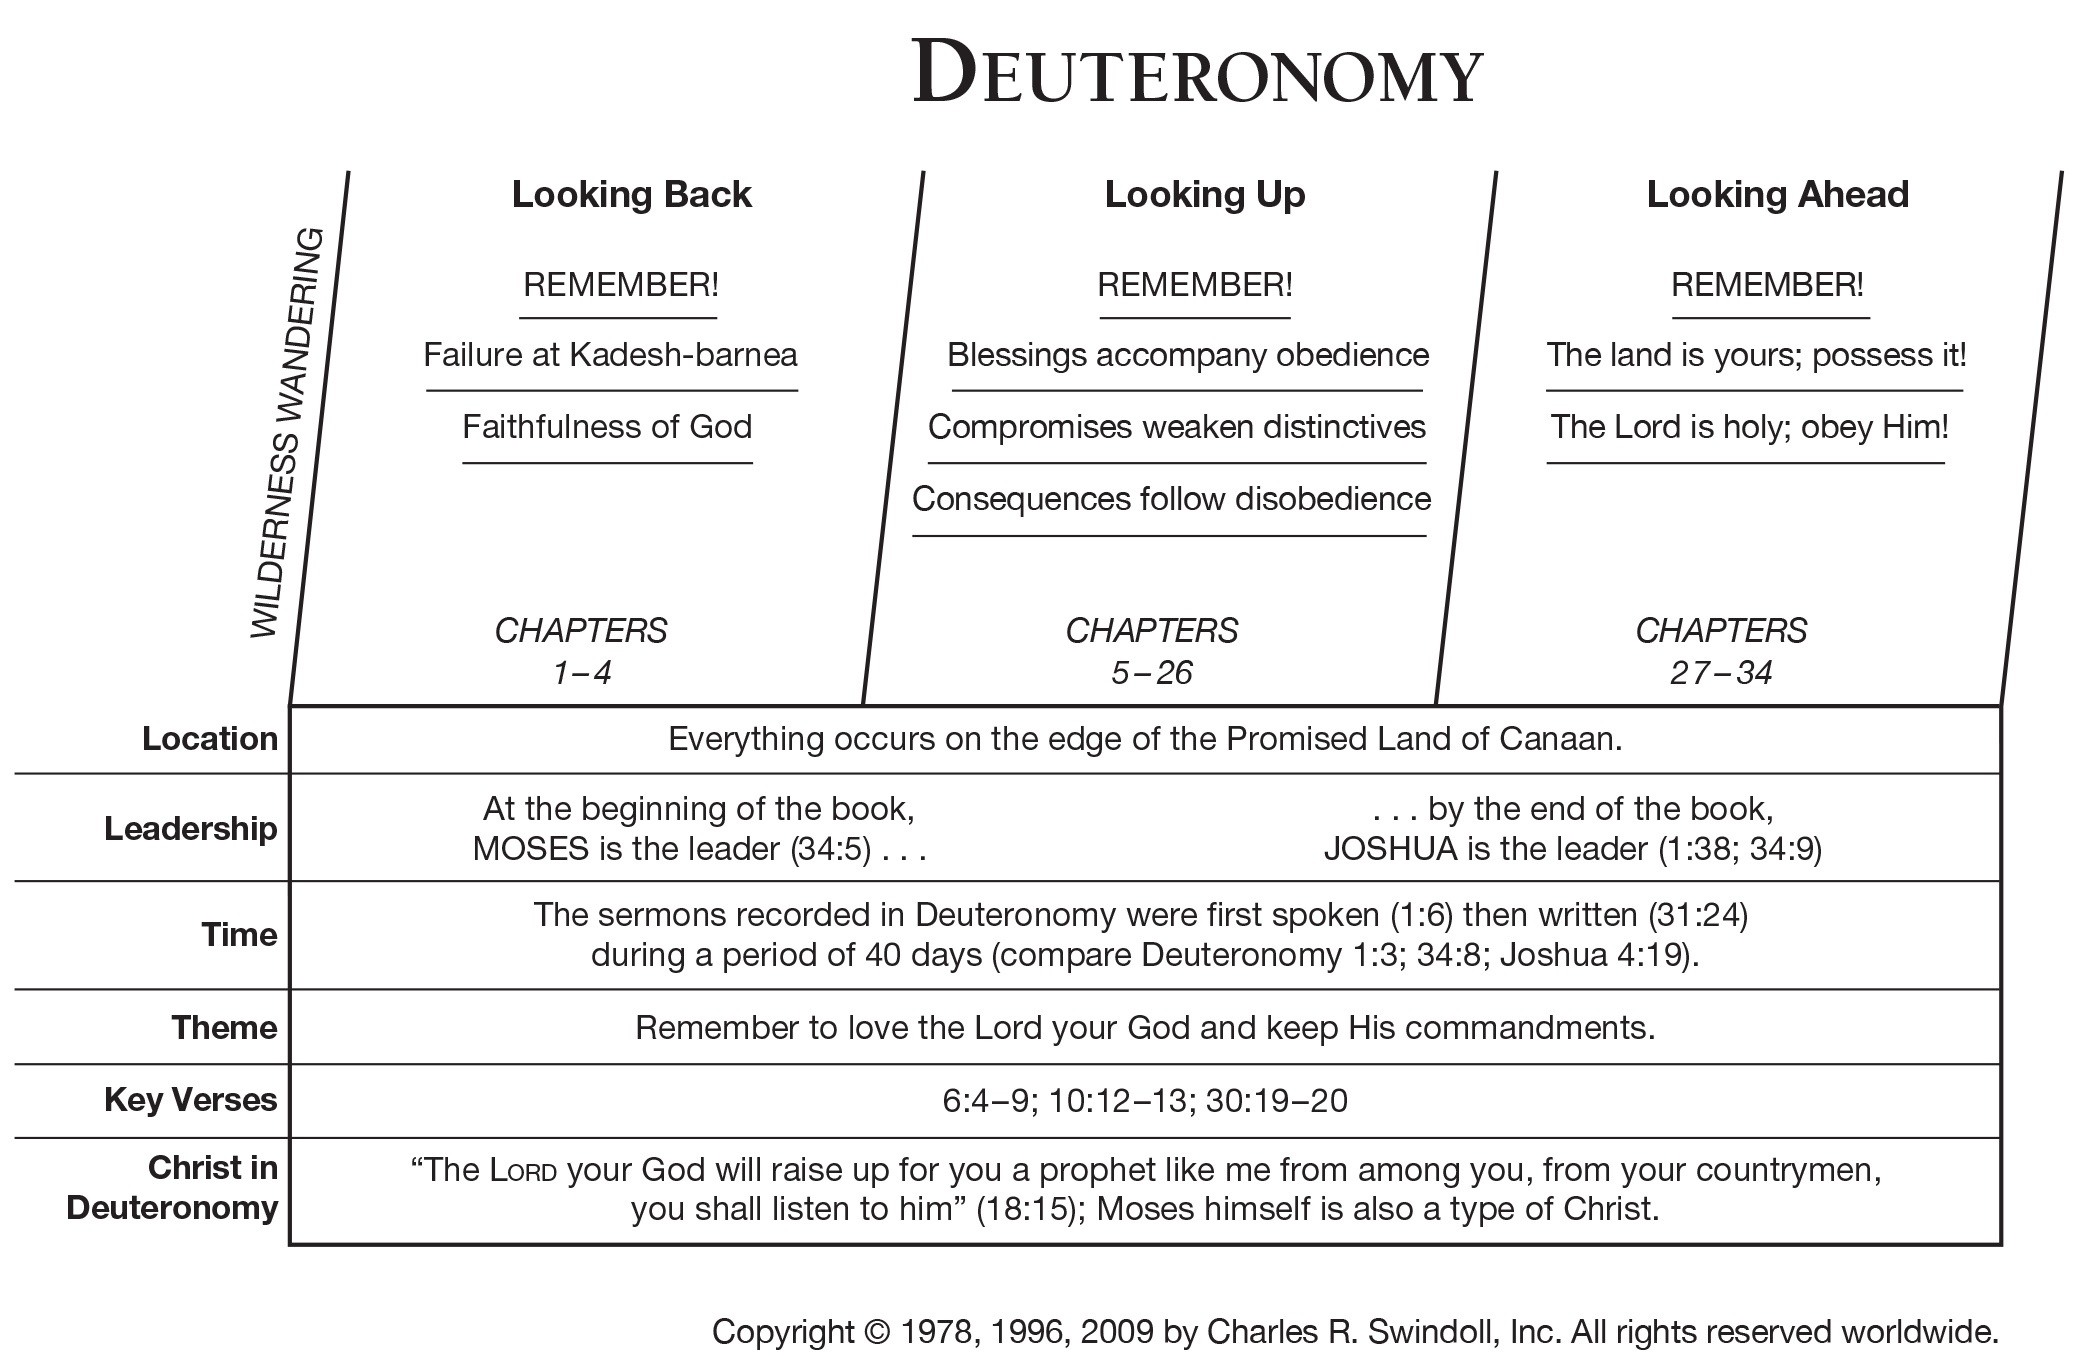 Book of Deuteronomy Overview - Insight for Living Ministries